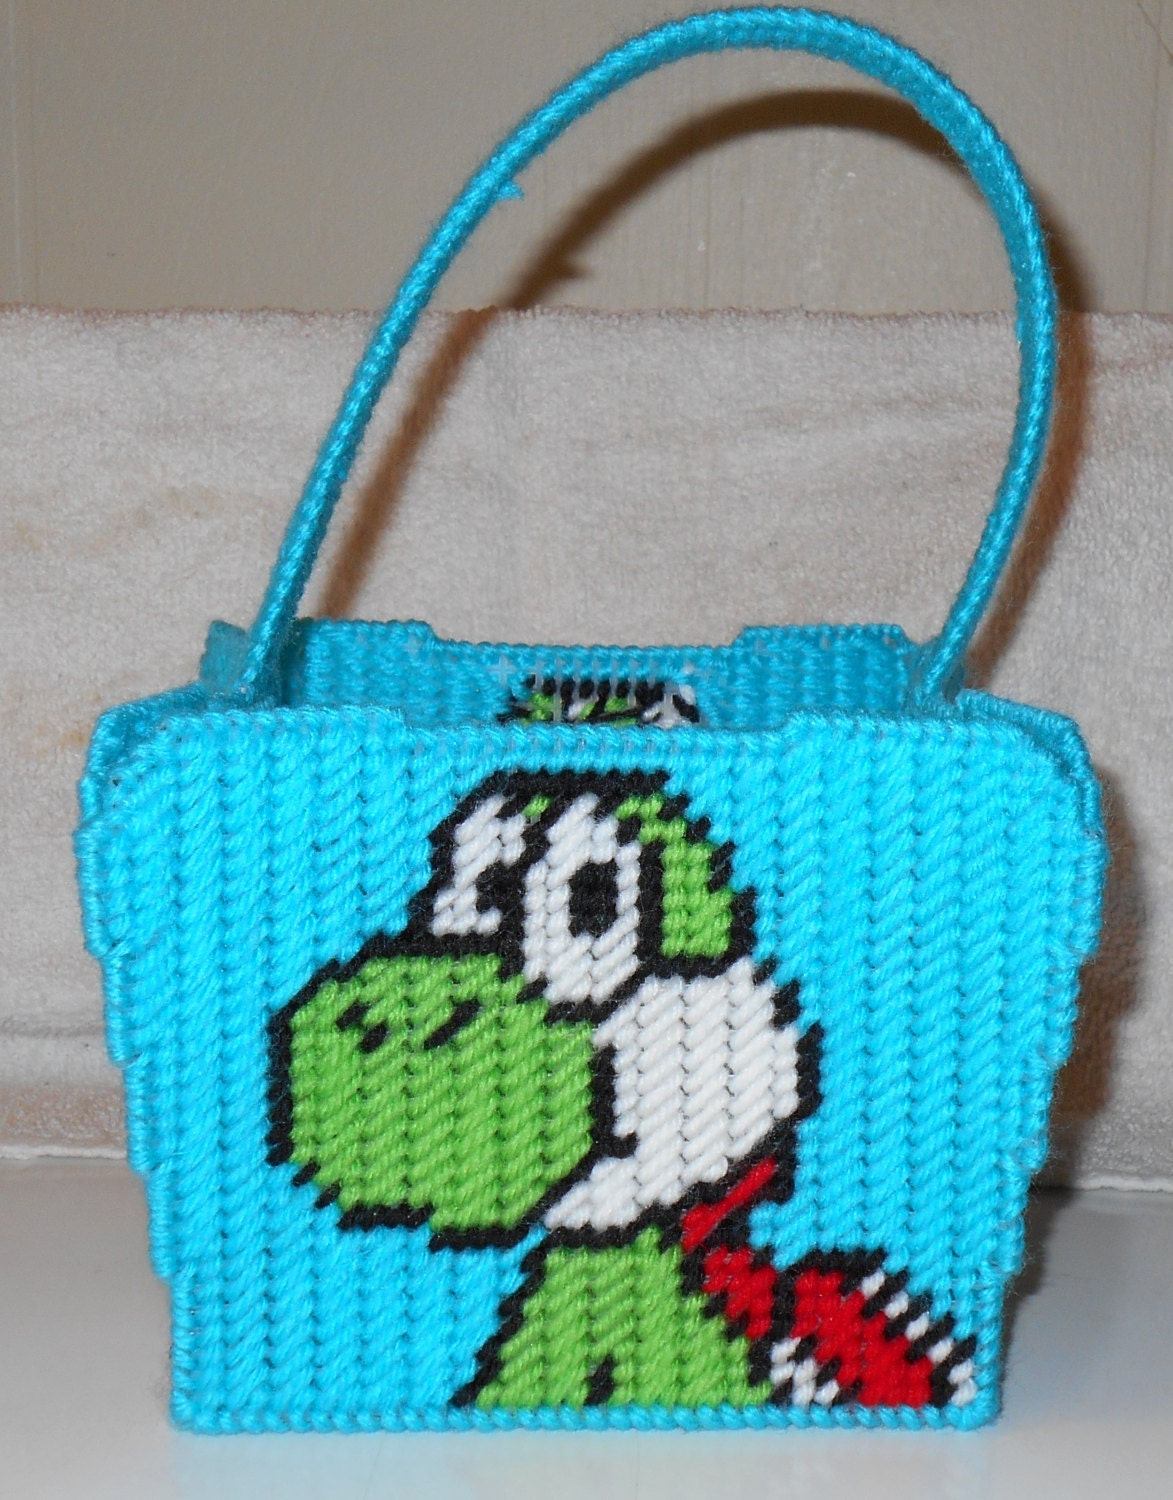 Yoshi Easter Basket Plastic Canvas Pattern from ... - photo#15